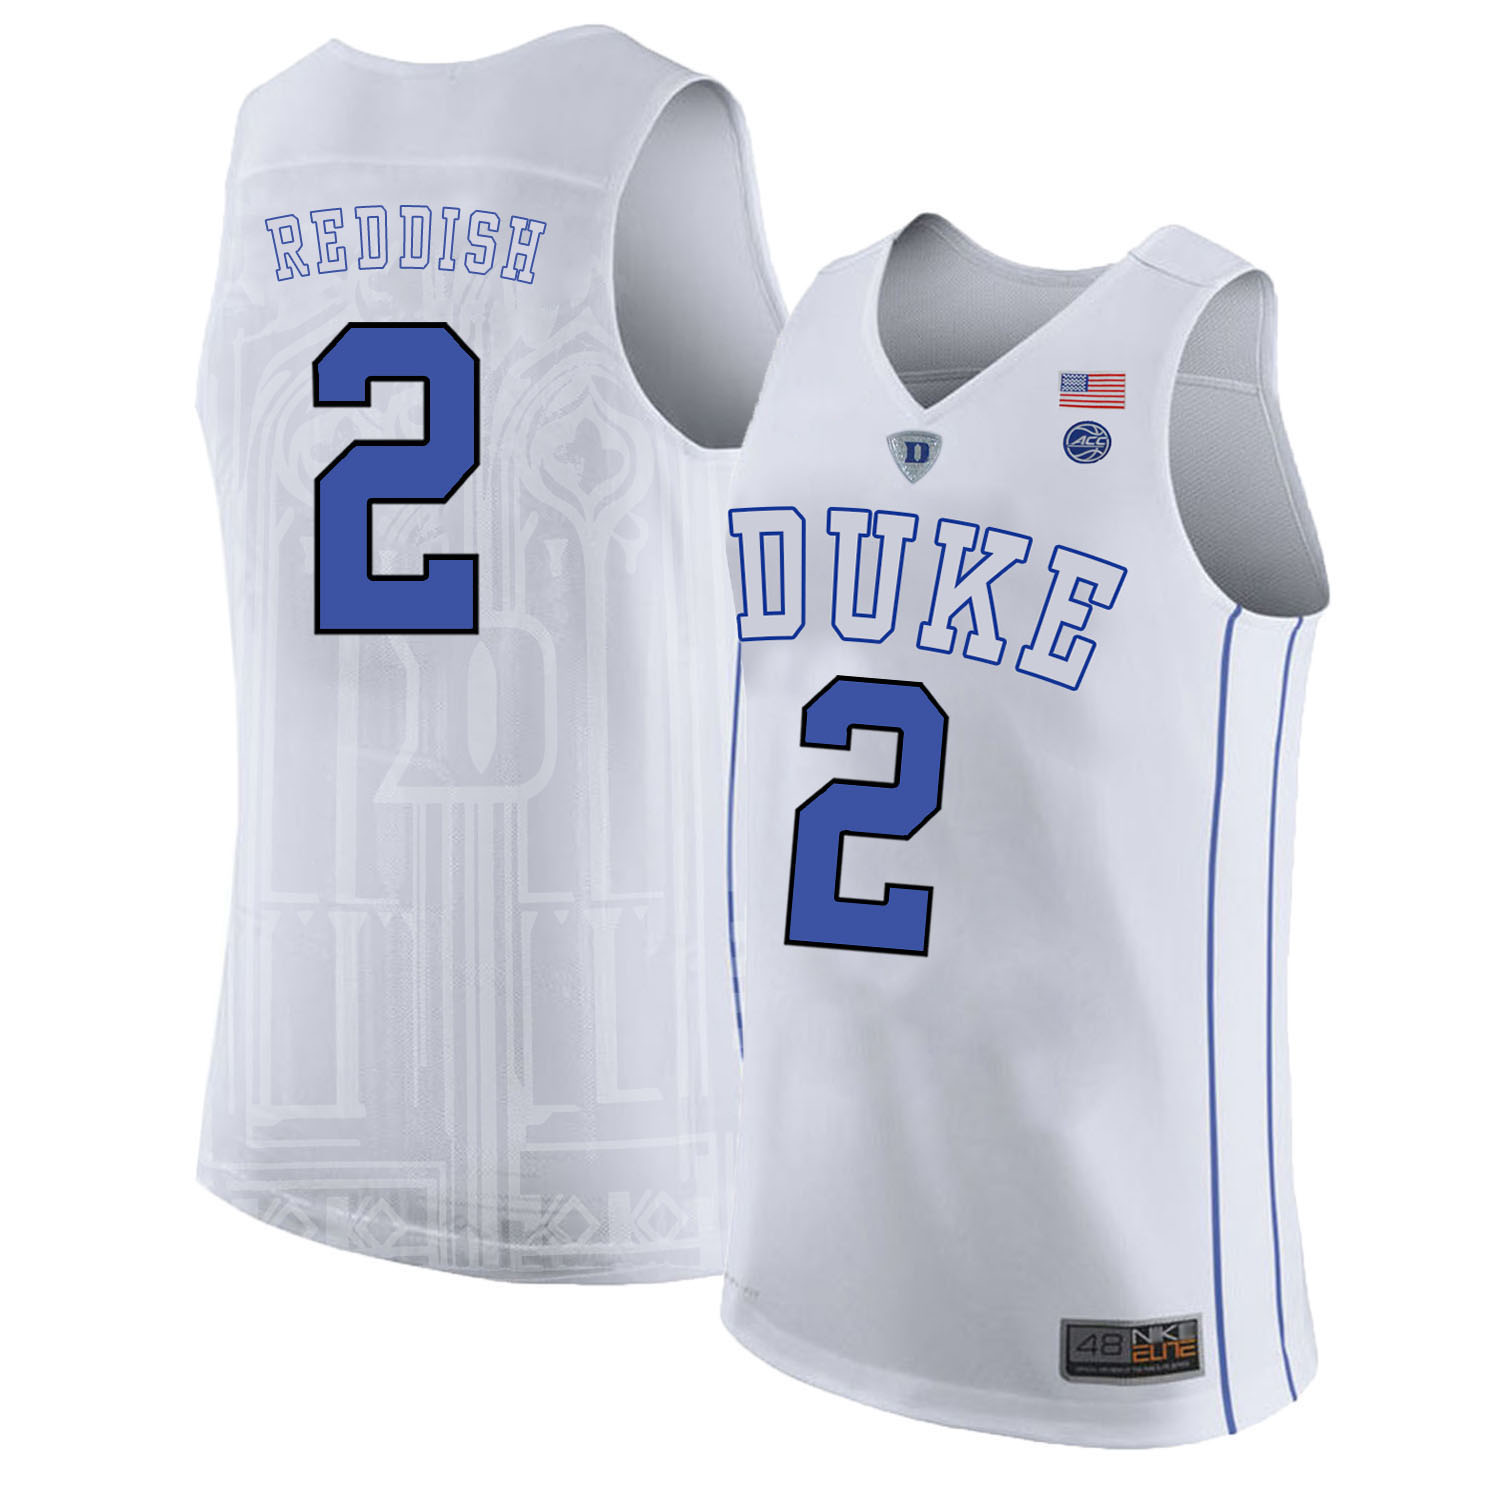 Majestic Athletic Men's Duke Blue Devils #2 Cam Reddish White College Basketball Jersey